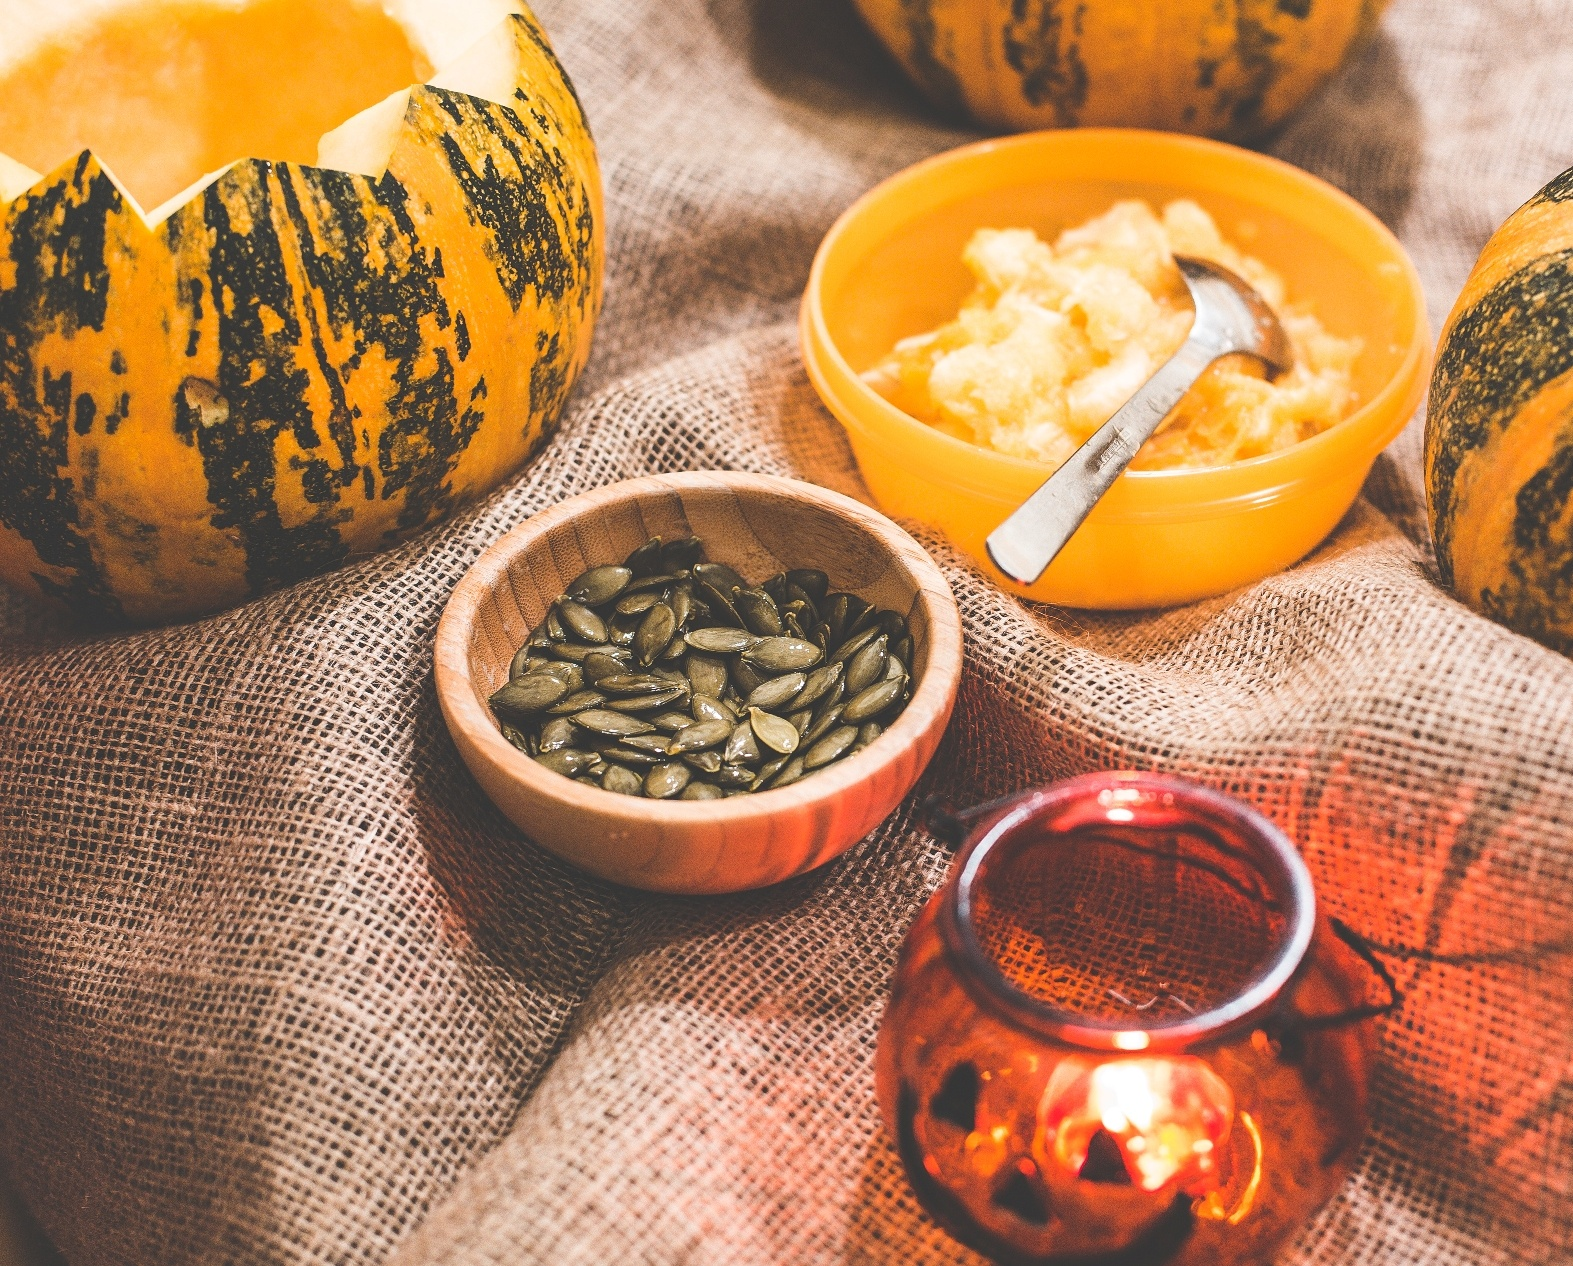 Pumpkin Additions to Recipes and Meals